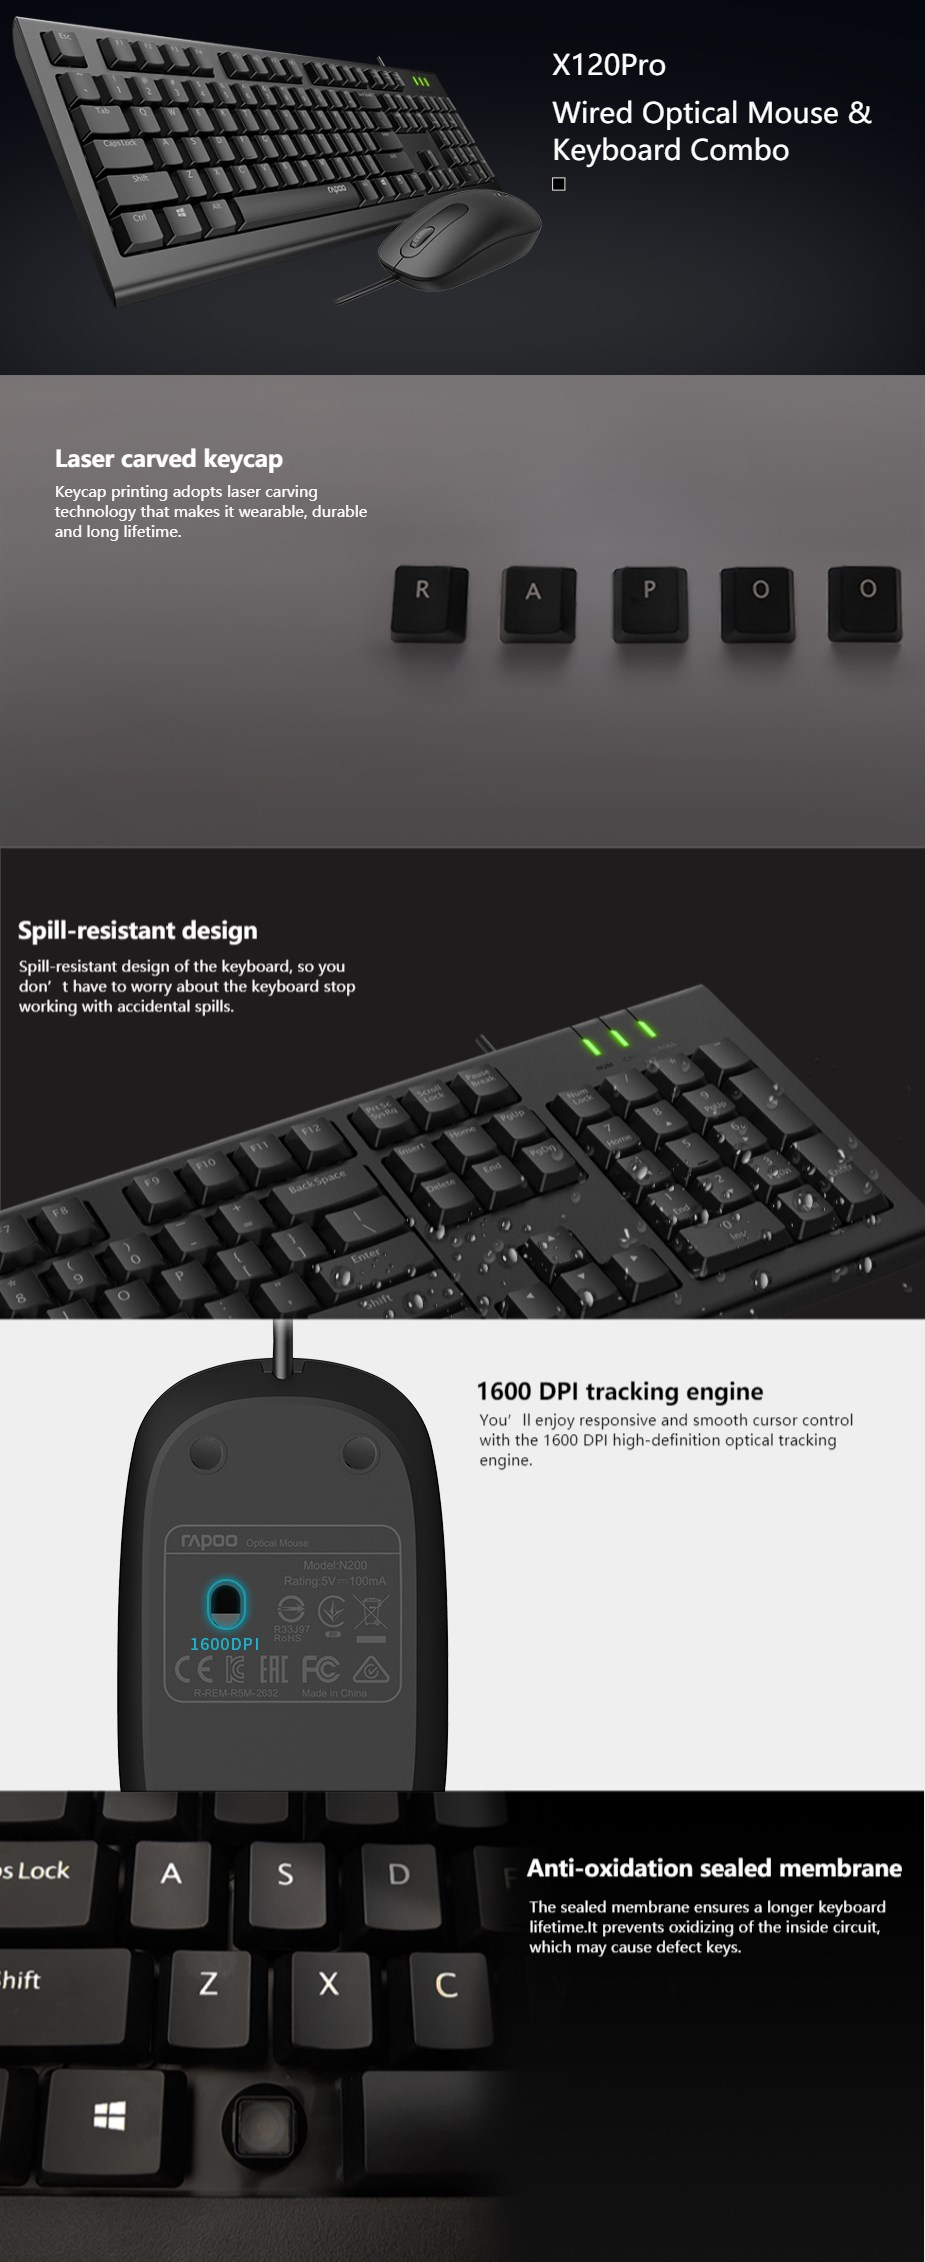 rapoo-x120pro-wired-spillresistant-keyboard-and-optical-mouse-combo-ac26644.jpg